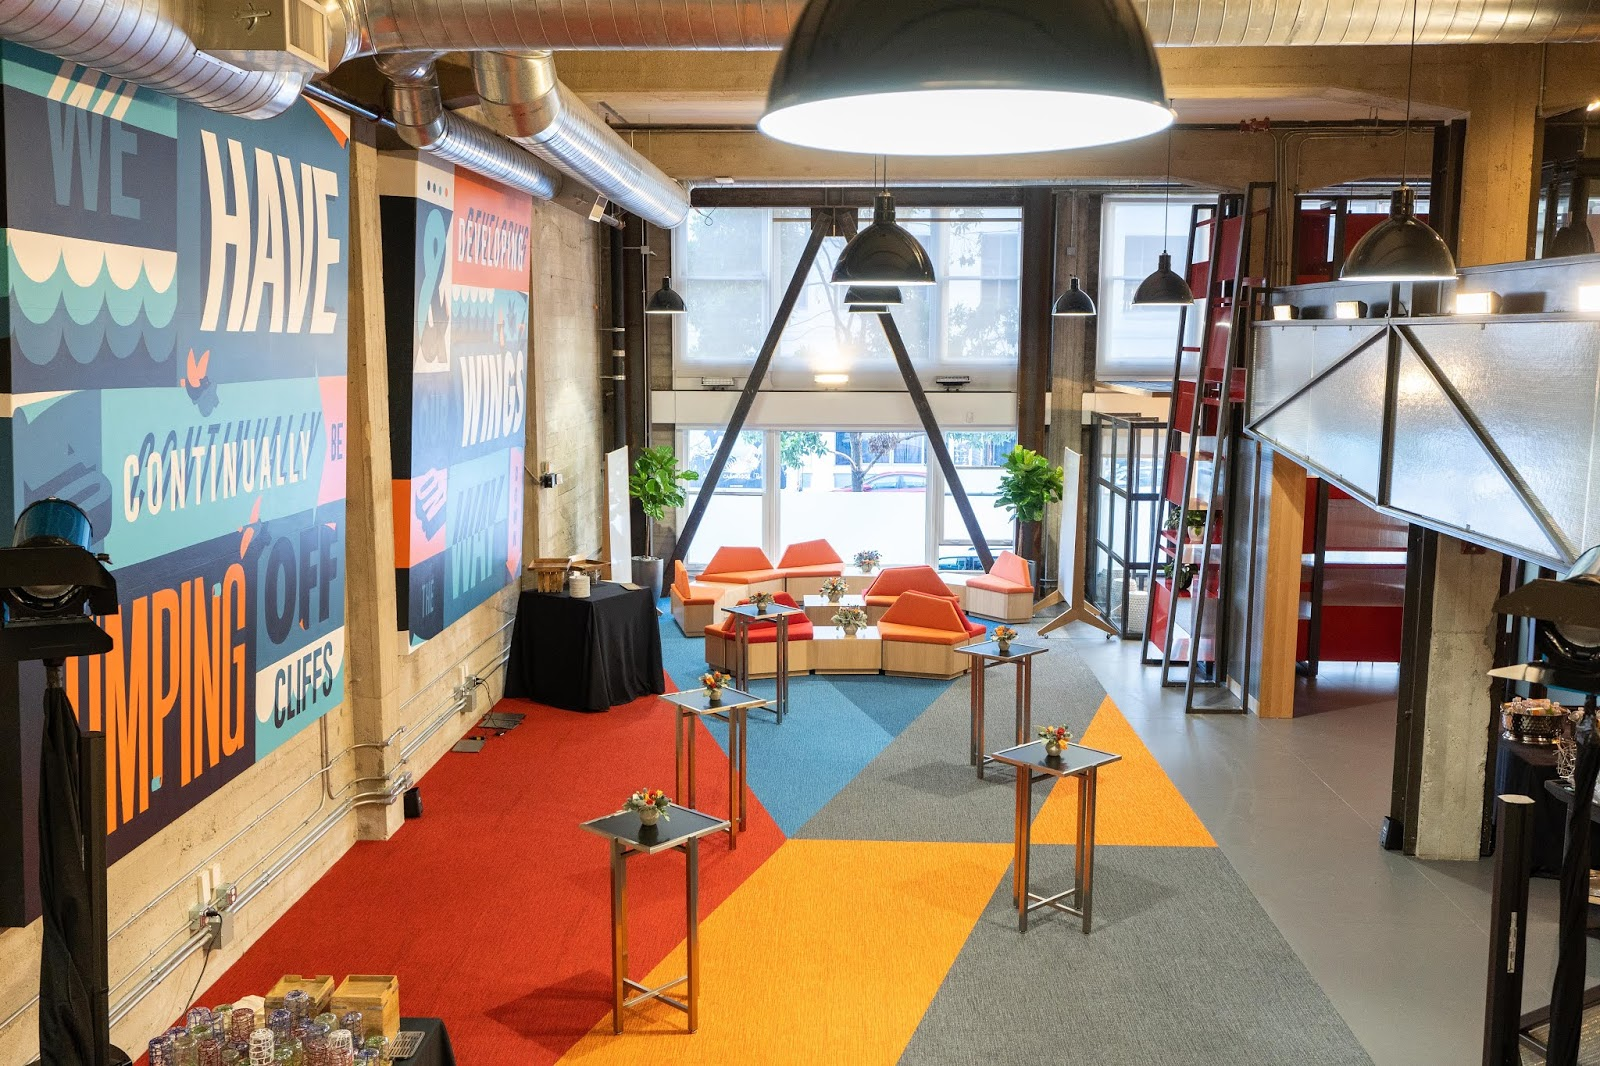 Google Developers Blog: Google opens new innovation space in